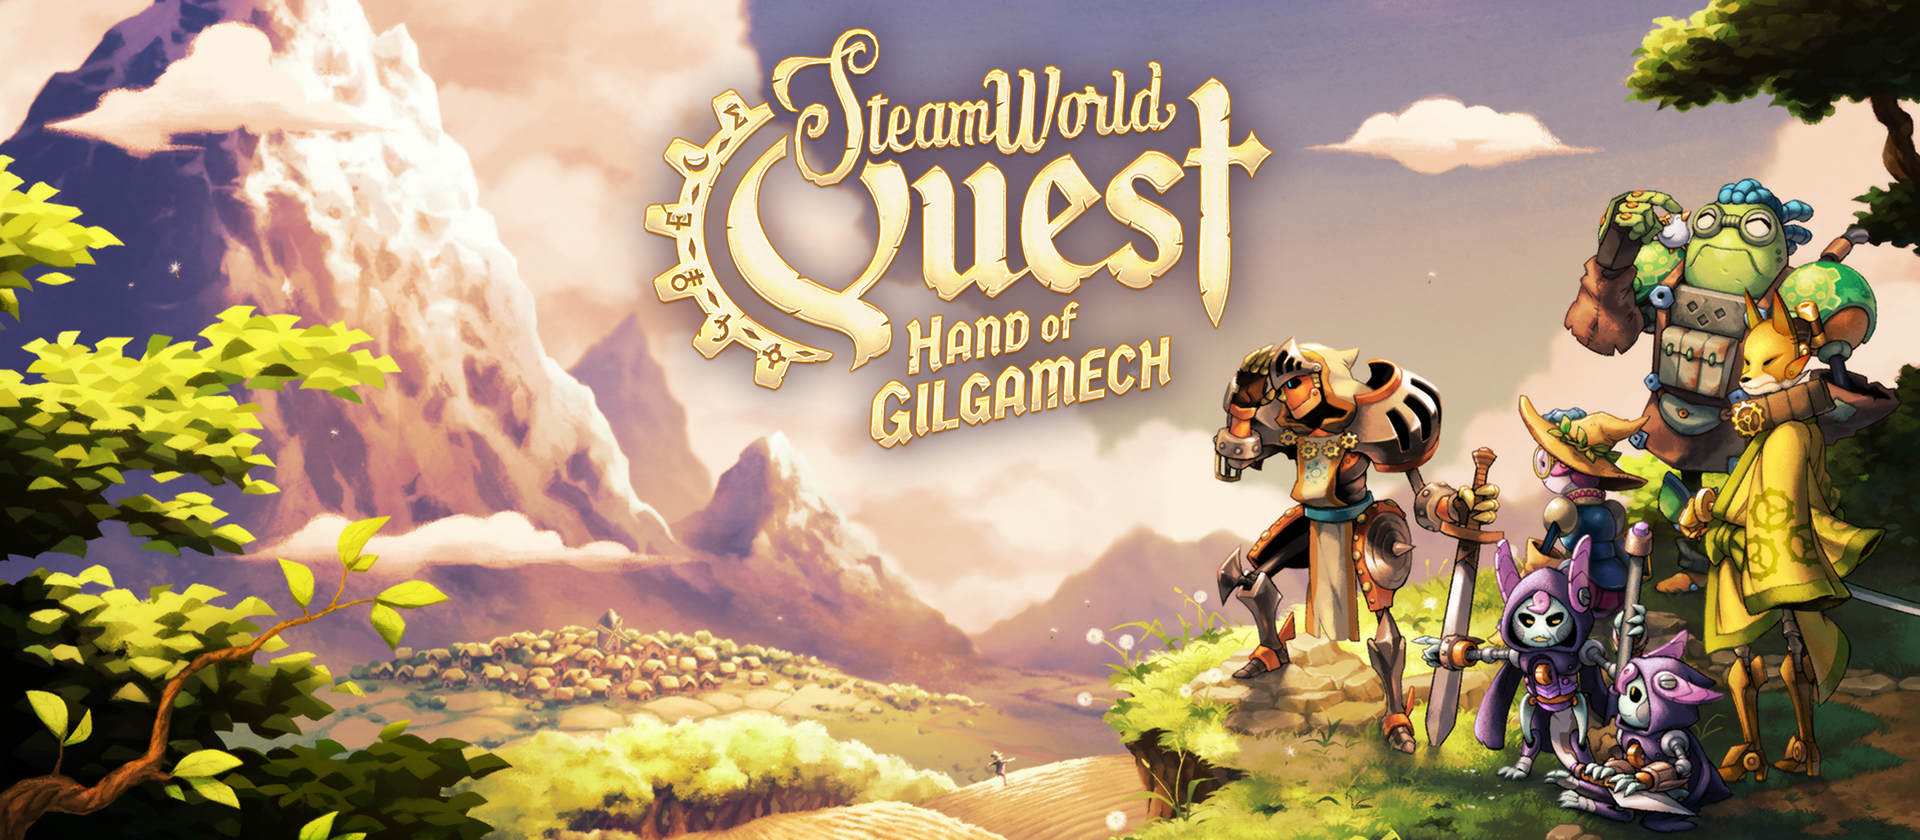 SteamWorld Quest Tells a Familiar Tale With a Different Battle System